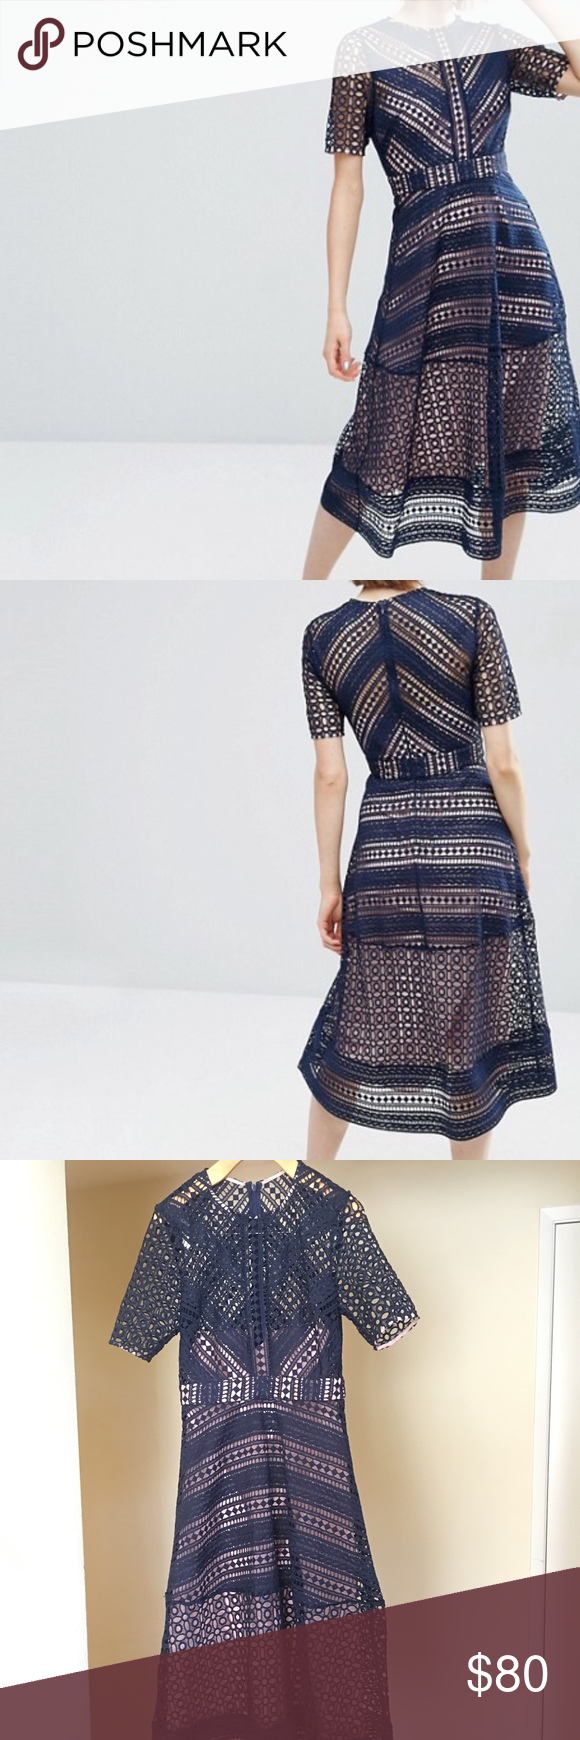 77ce1a393bd1 Asos Premium Occasion Lace Midi Dress in Navy NWT ASOS Premium Occasion Lace  Midi Dress in Navy Blue. Brand New never worn. Size 8 but runs small.